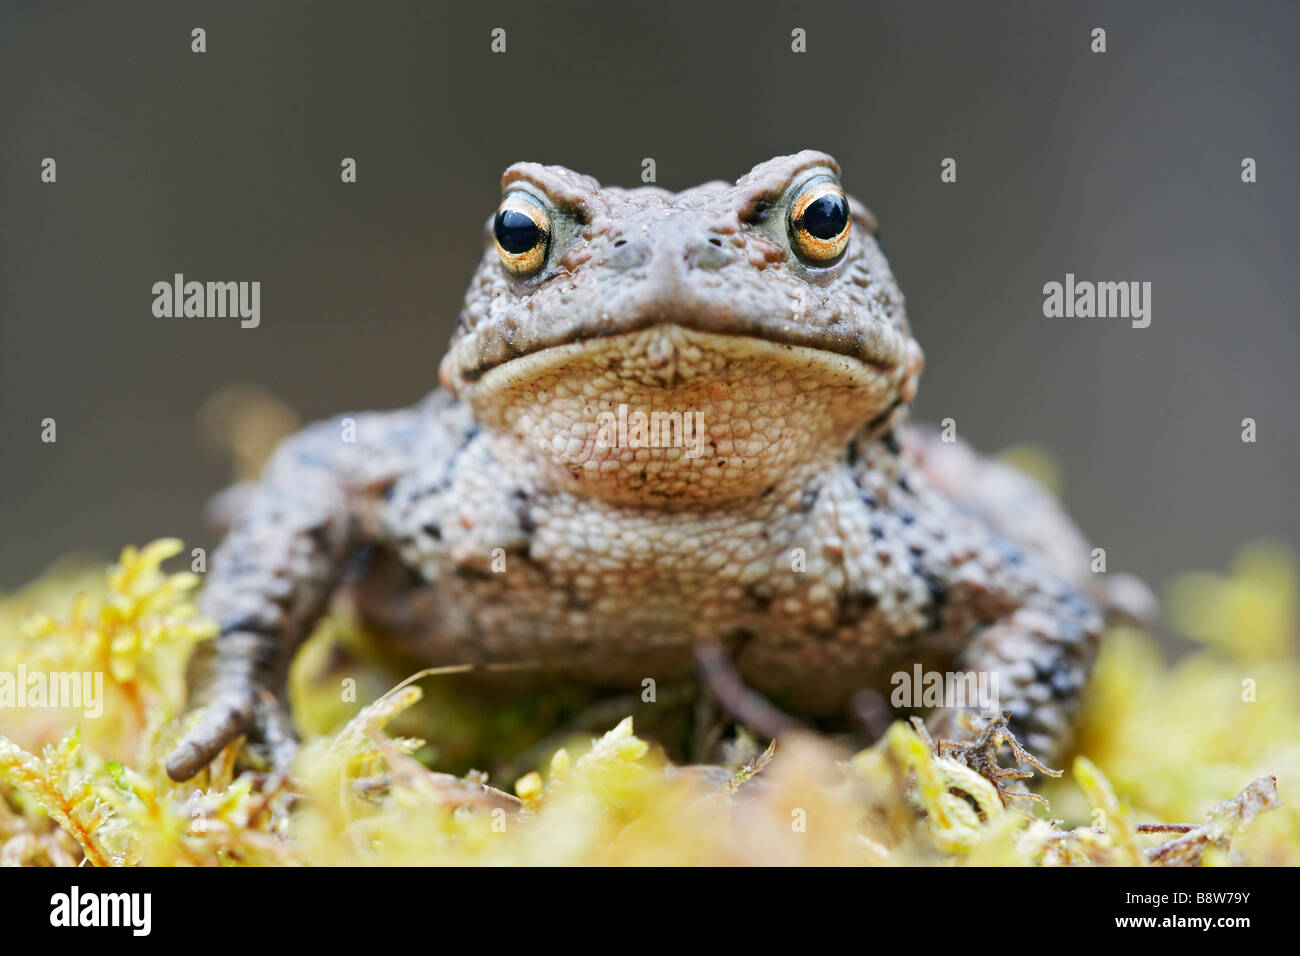 European Common Toad (Bufo bufo), adult male resting on moss - Stock Image